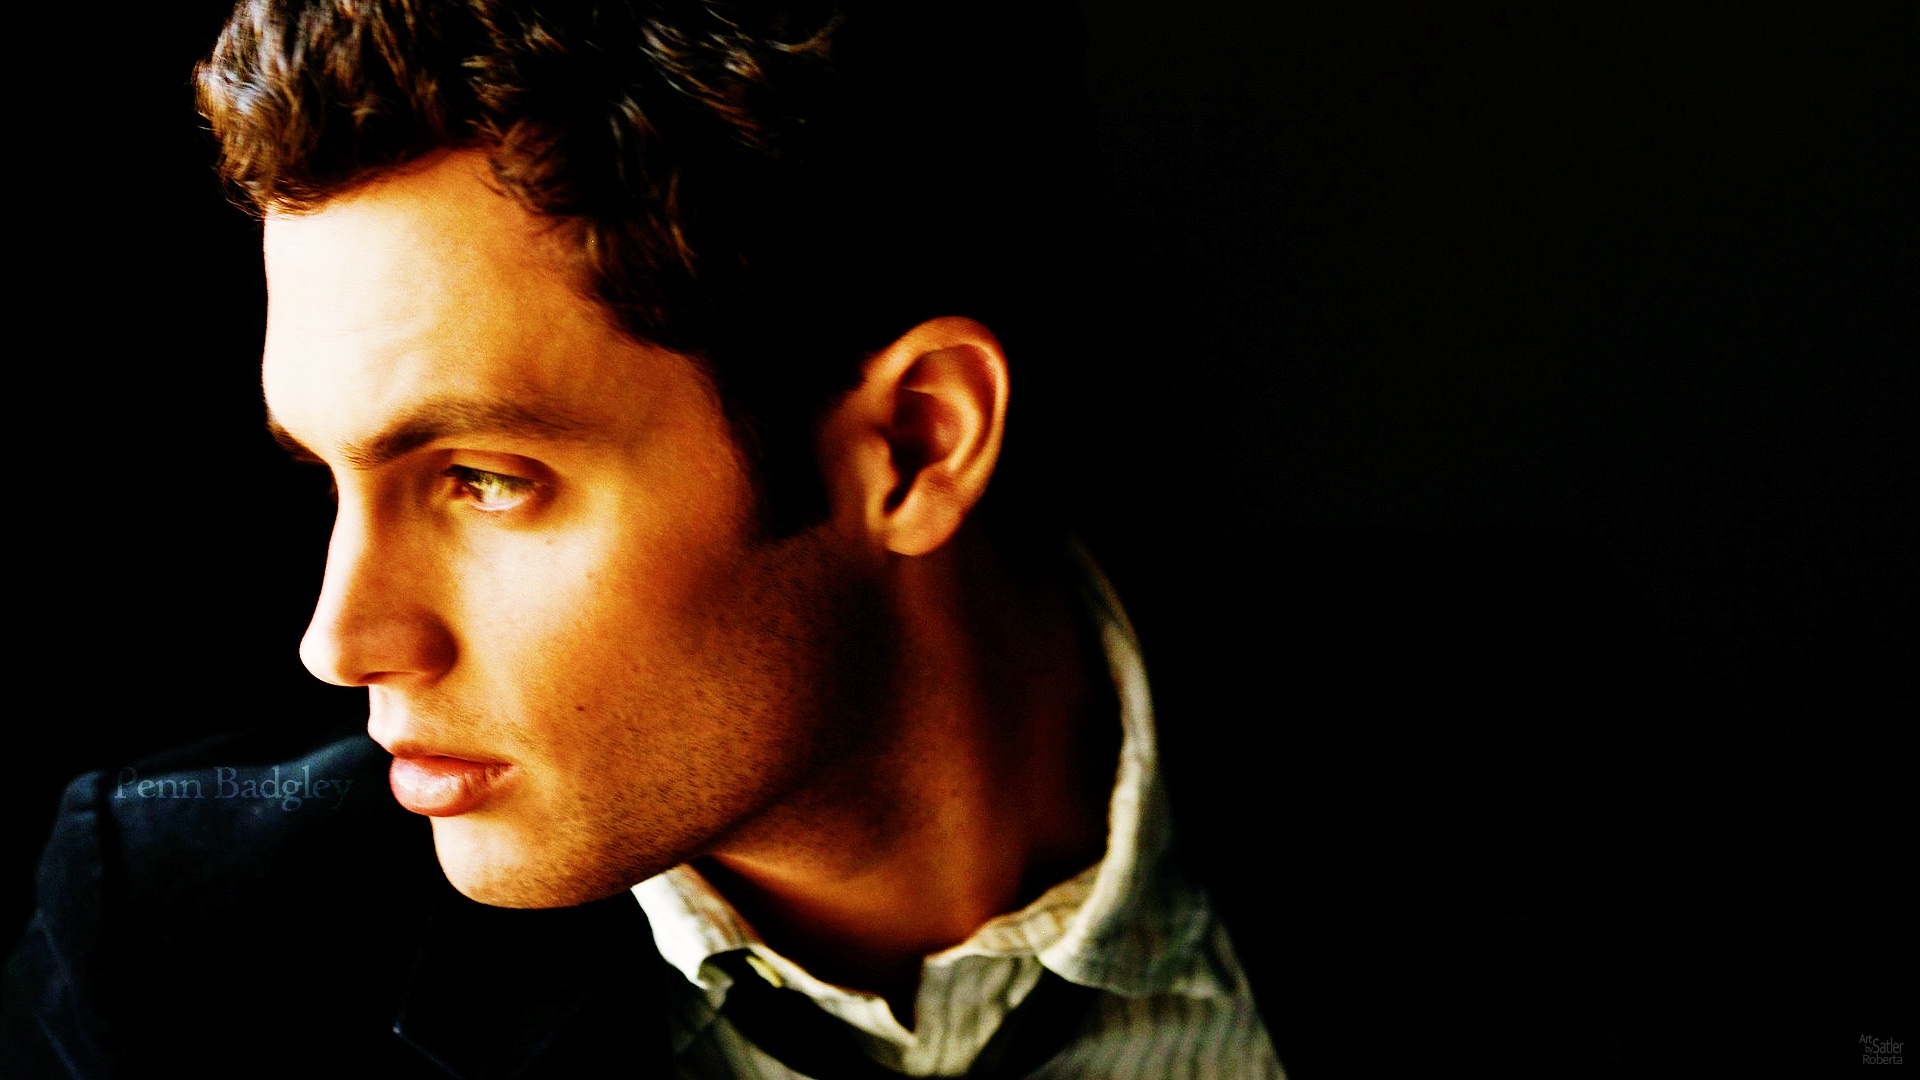 Penn Badgley Wallpapers Penn Badgley Penn Badgley Wallpaper Fanpop